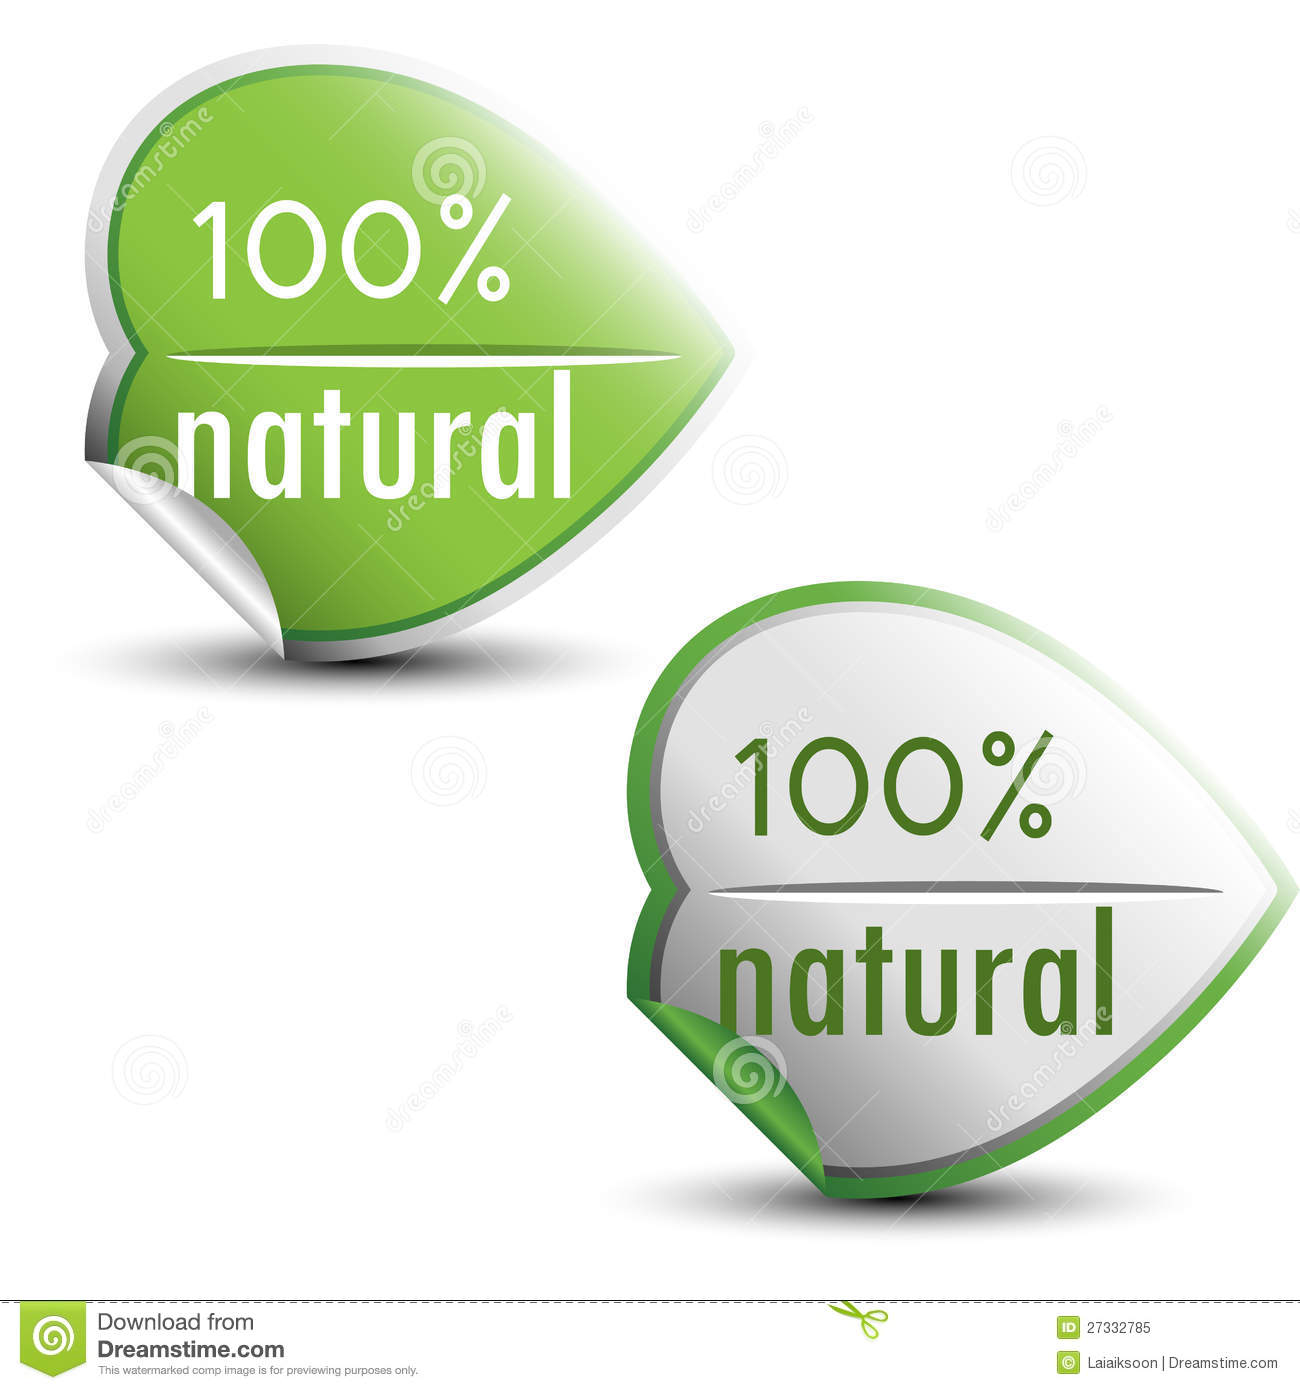 100% Natural Stickers Royalty Free Stock Photo - Image: 27332785